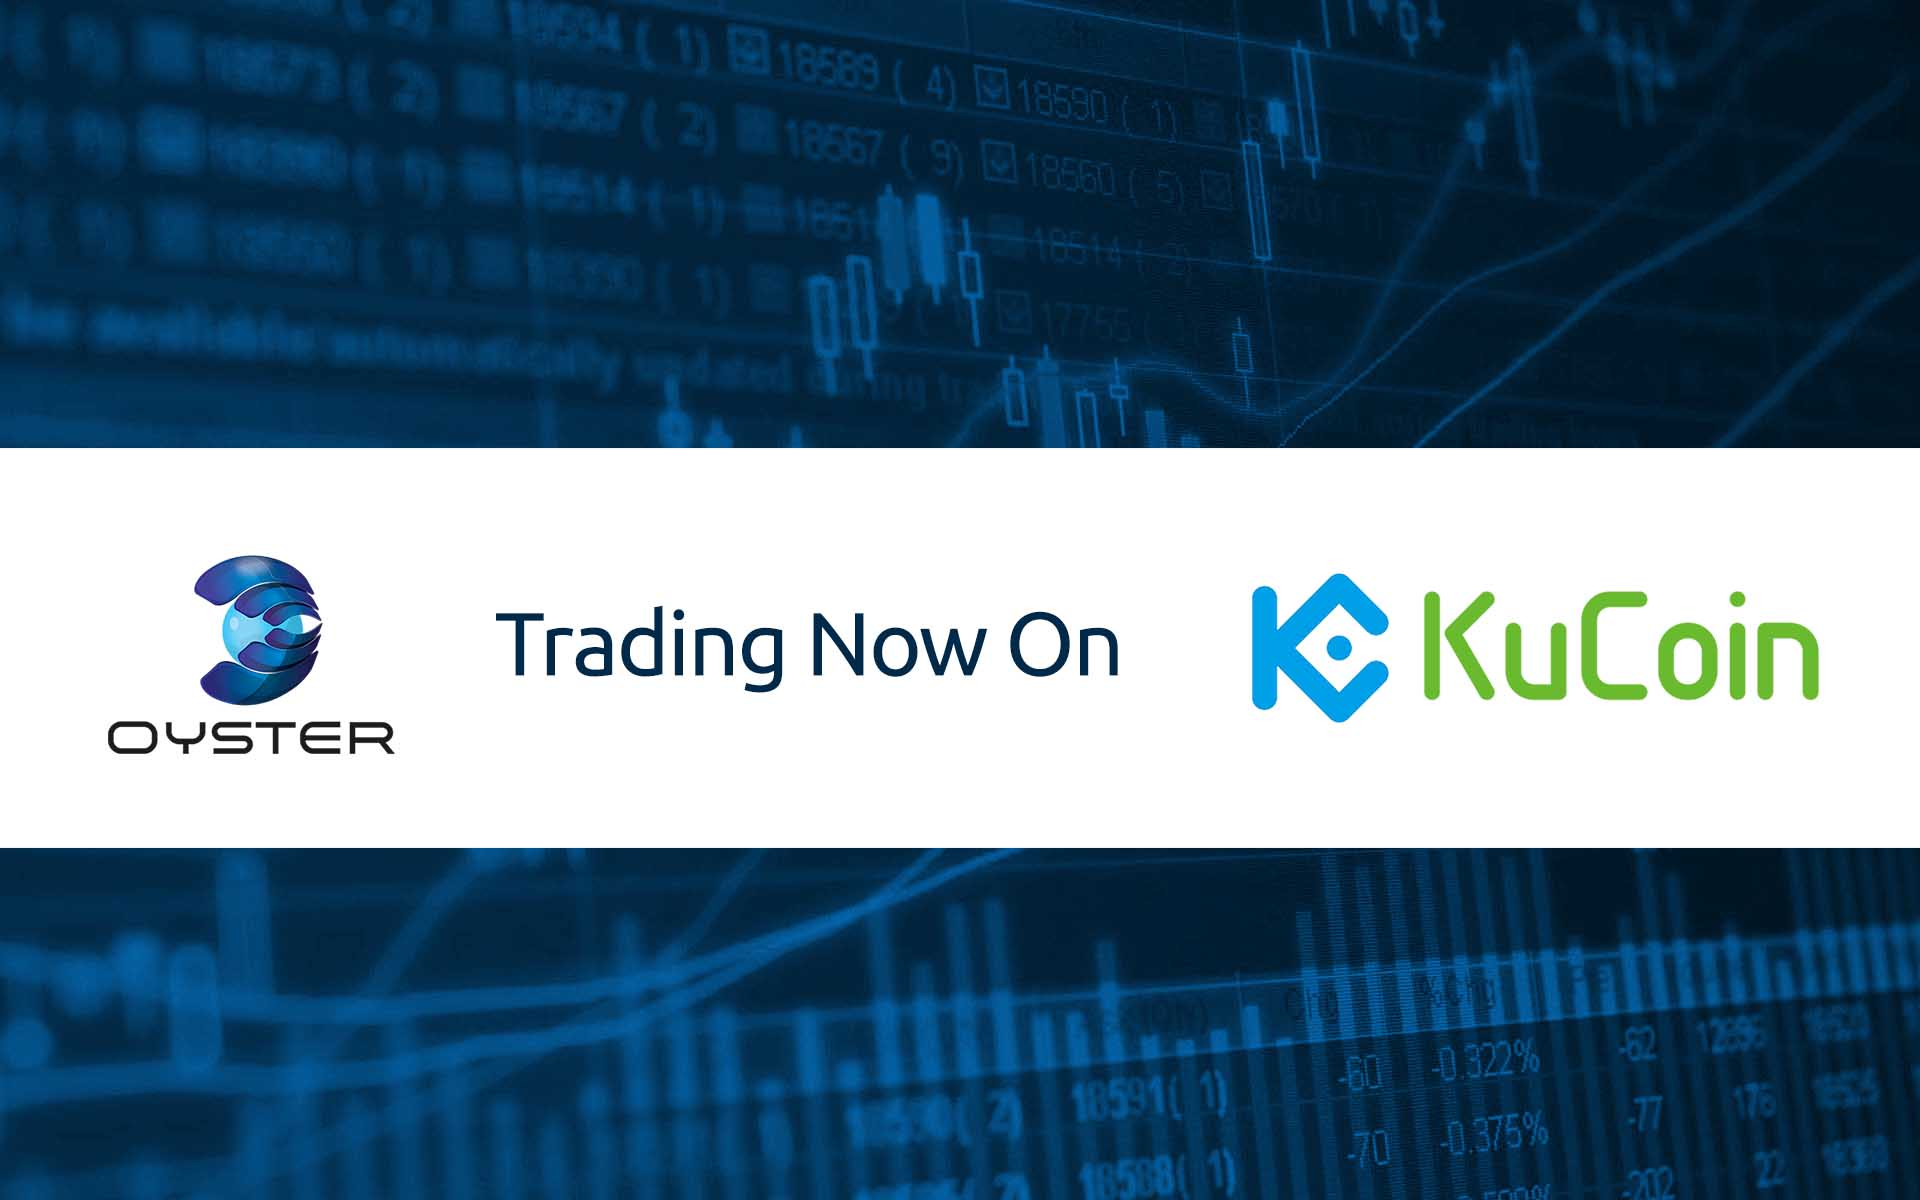 Oyster Pearl Listed On KuCoin: Trading in Progress Now